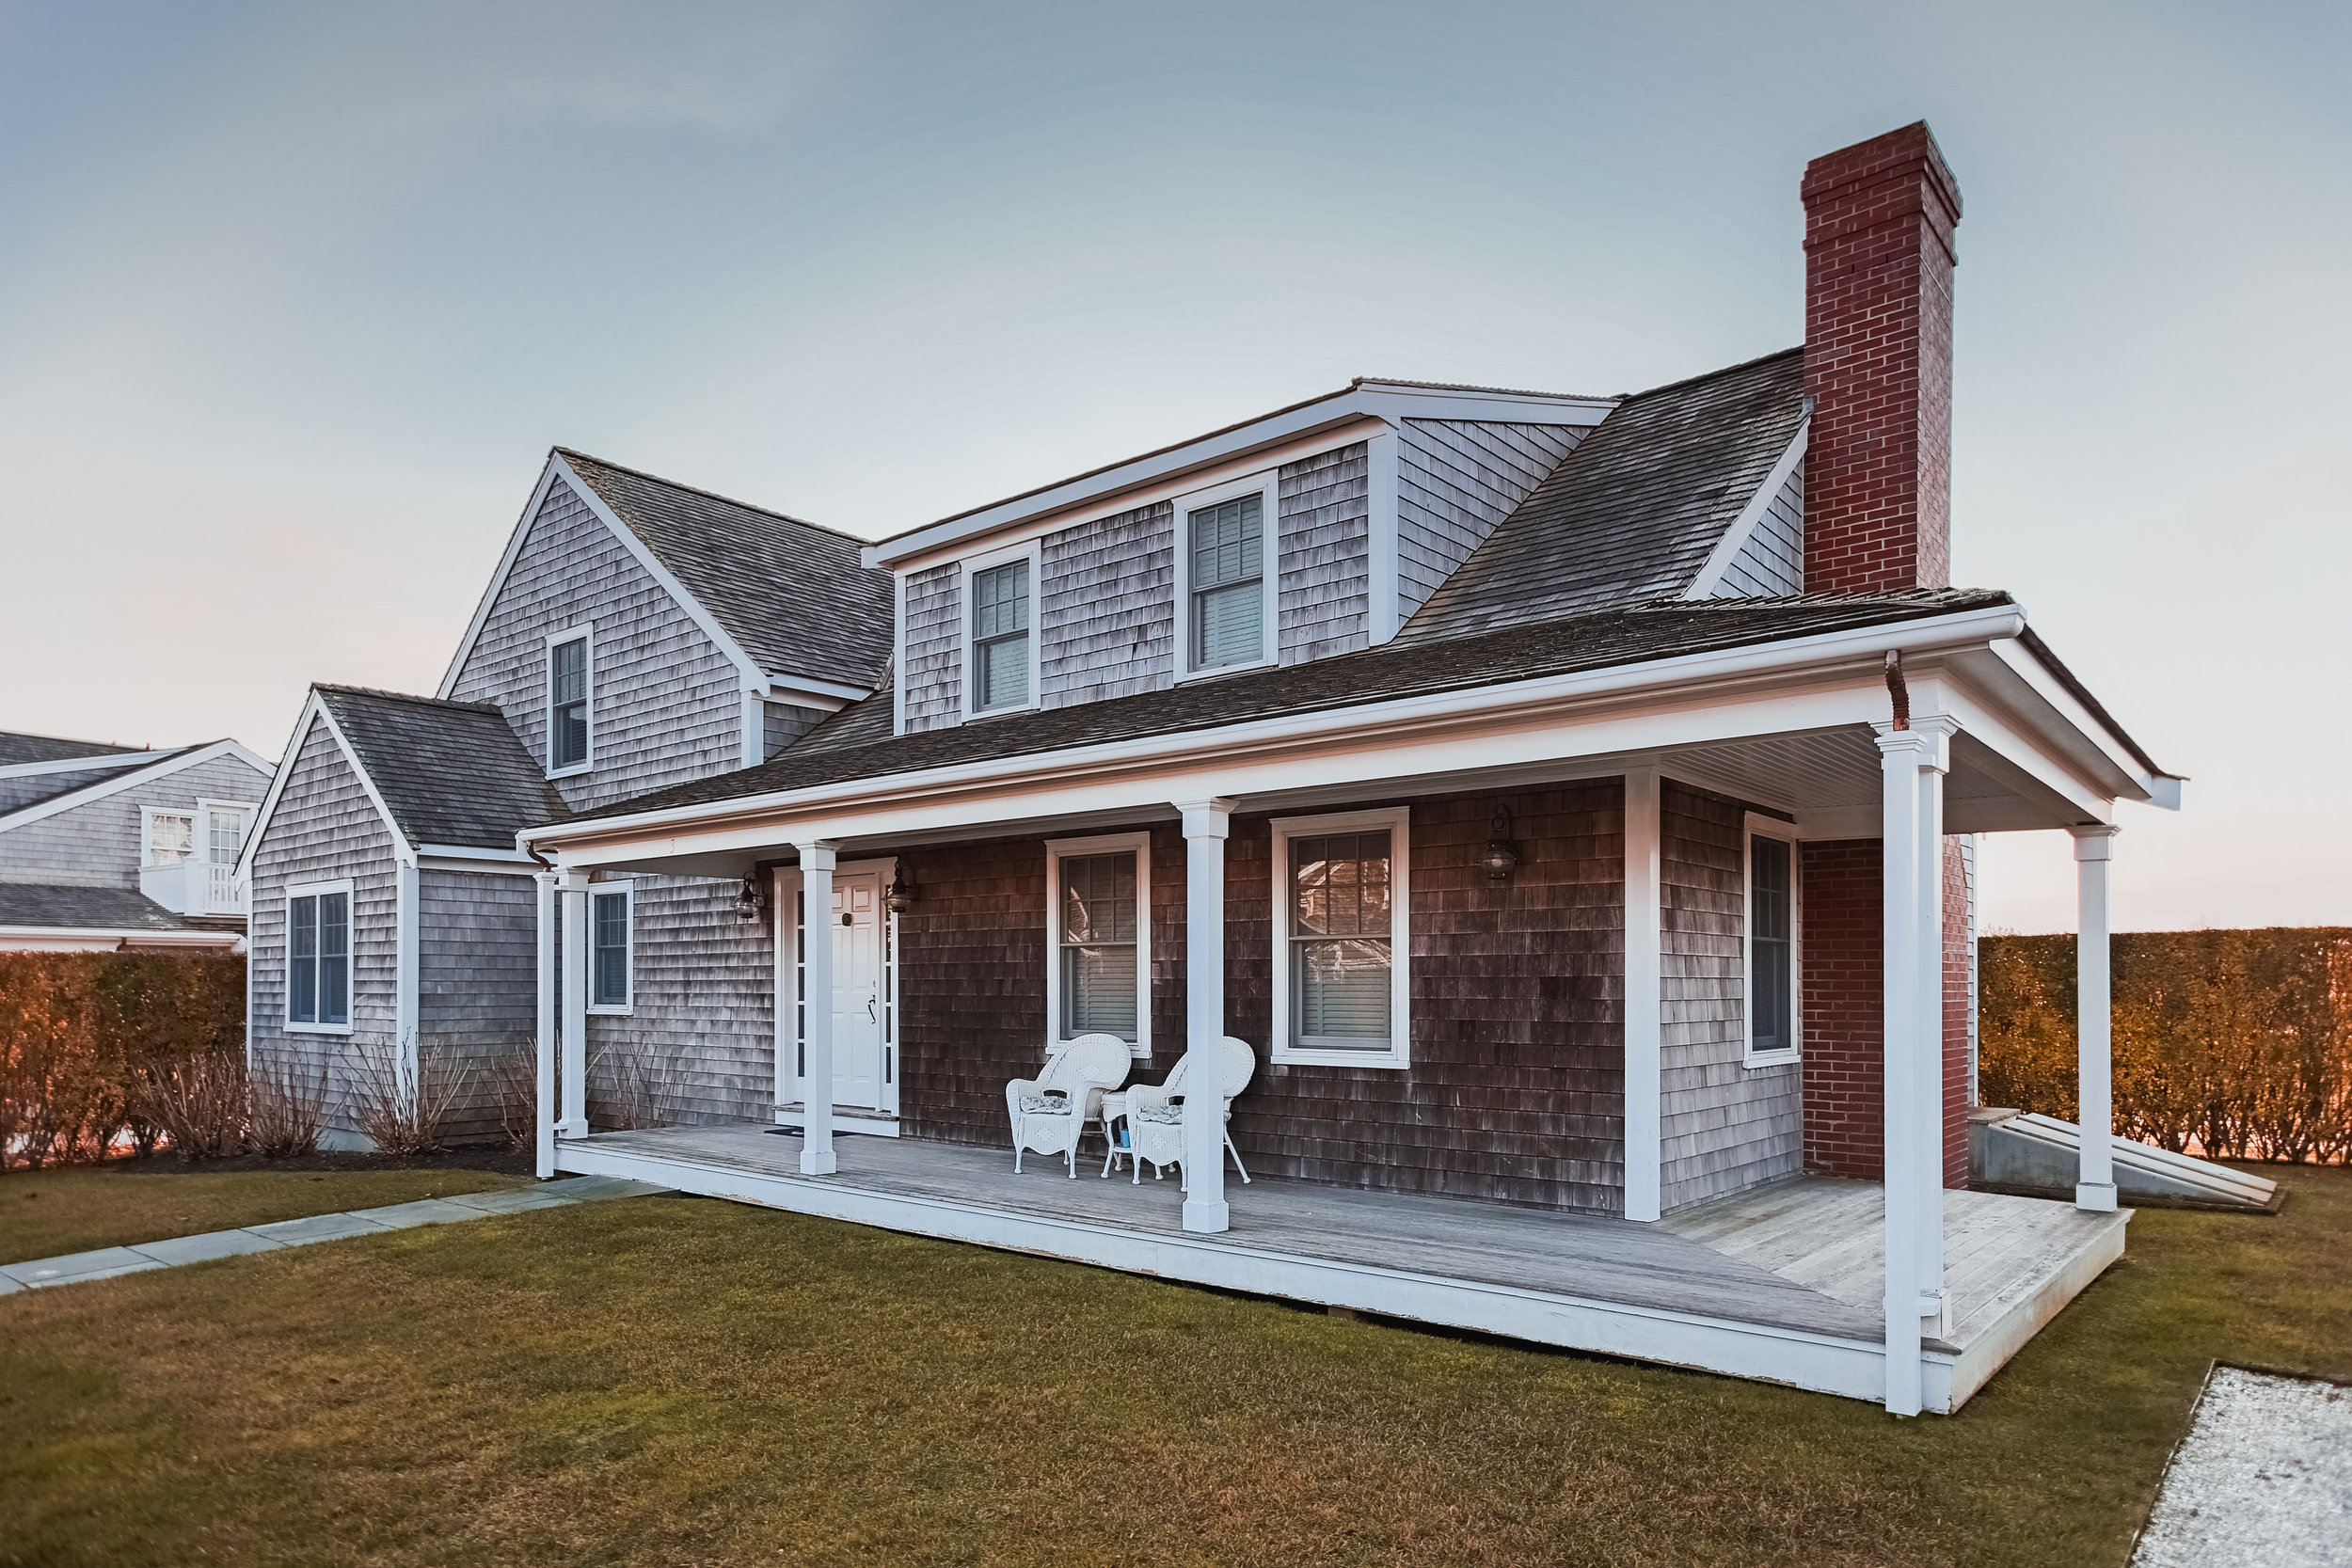 Beautiful traditional Nantucket ocean home. Only problem? Dead grass & overcast.